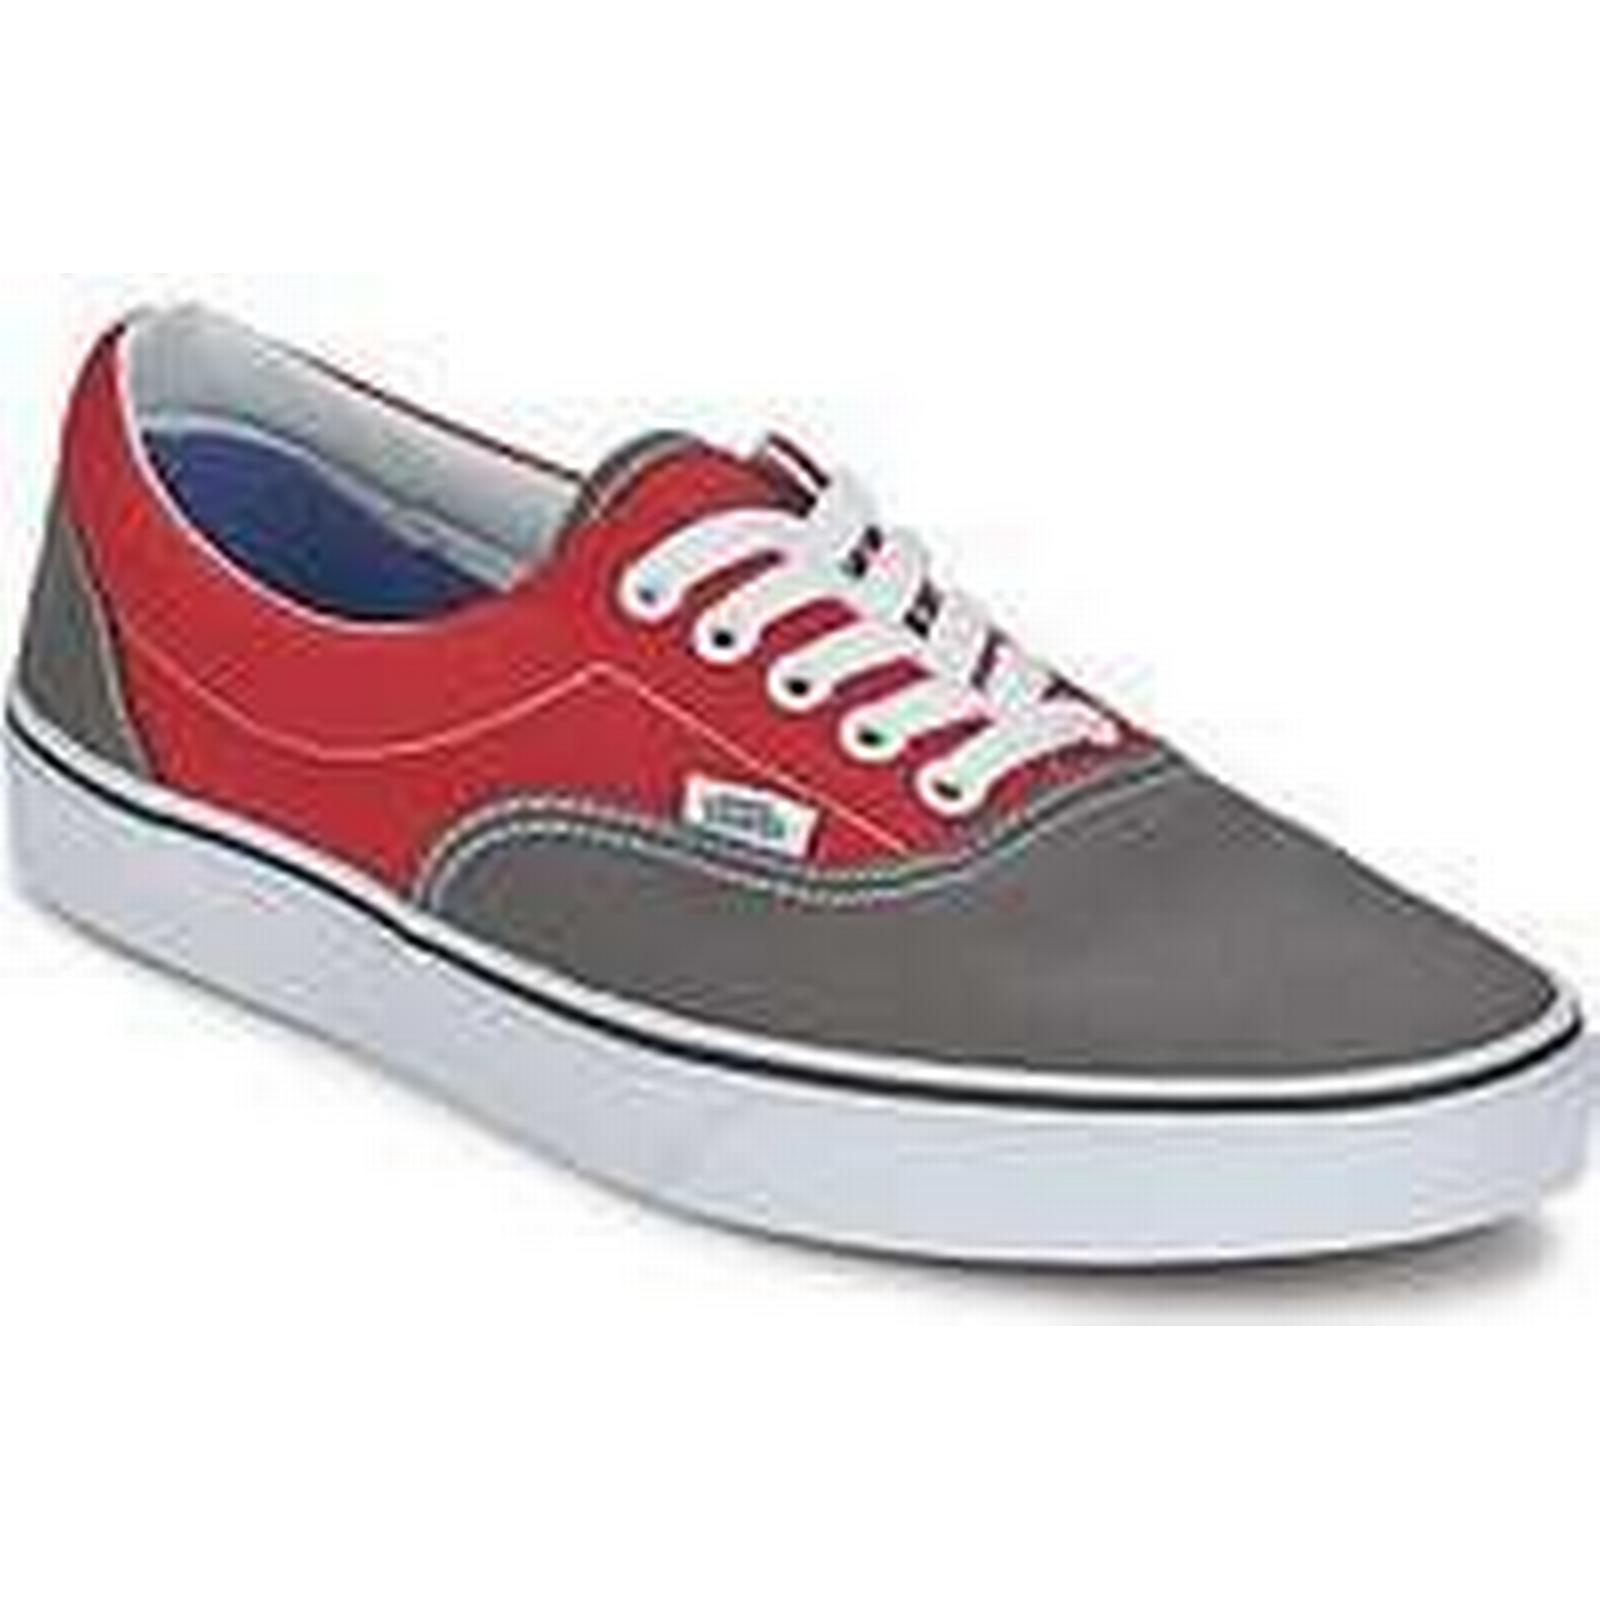 Spartoo.co.uk Vans ERA (Trainers) women's Shoes (Trainers) ERA in Multicolour 5d6479